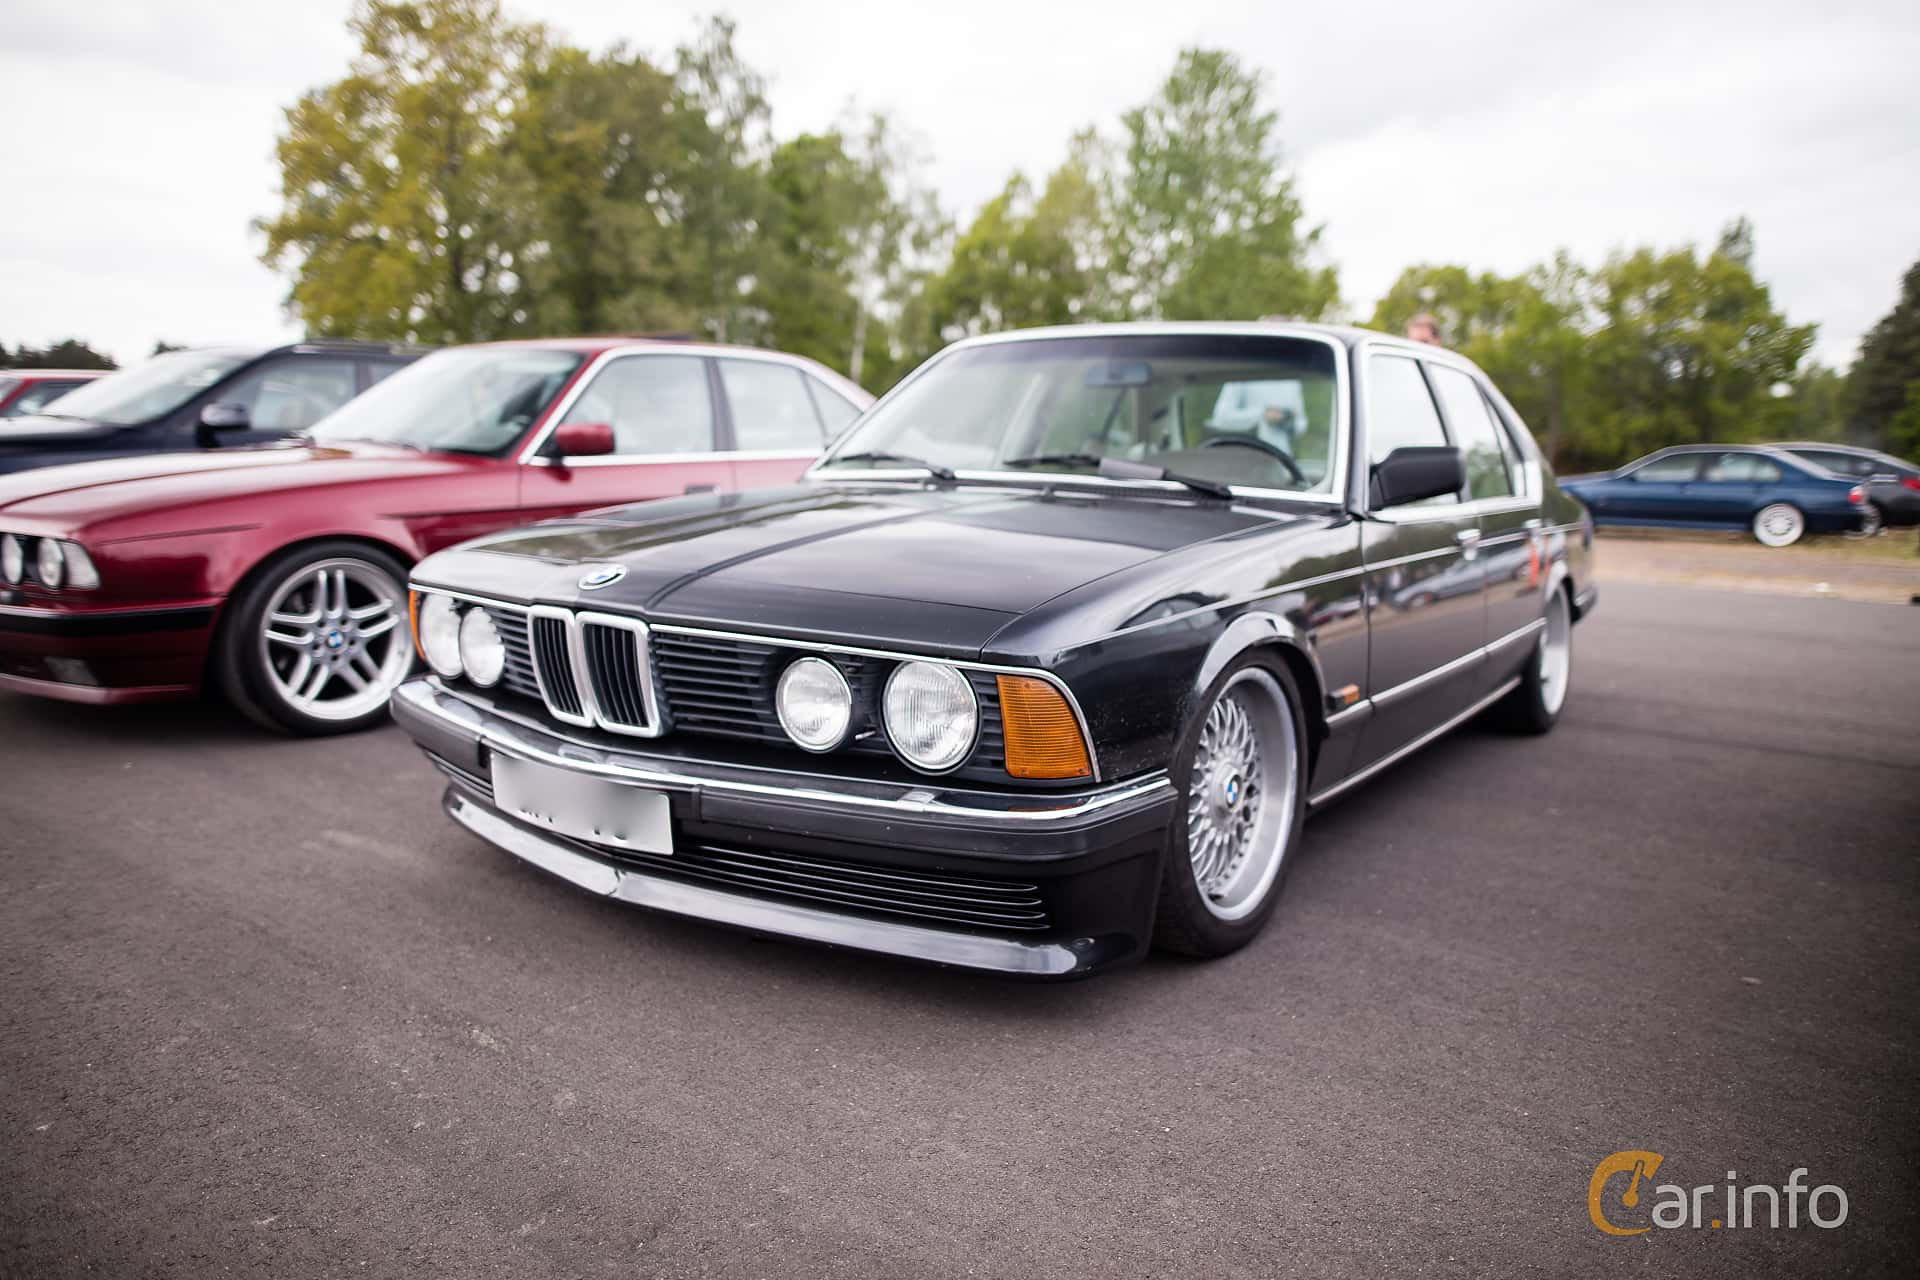 BMW 745i 34 Automatic 252hp 1986 At Bimmers Of Sweden Mantorp 2016